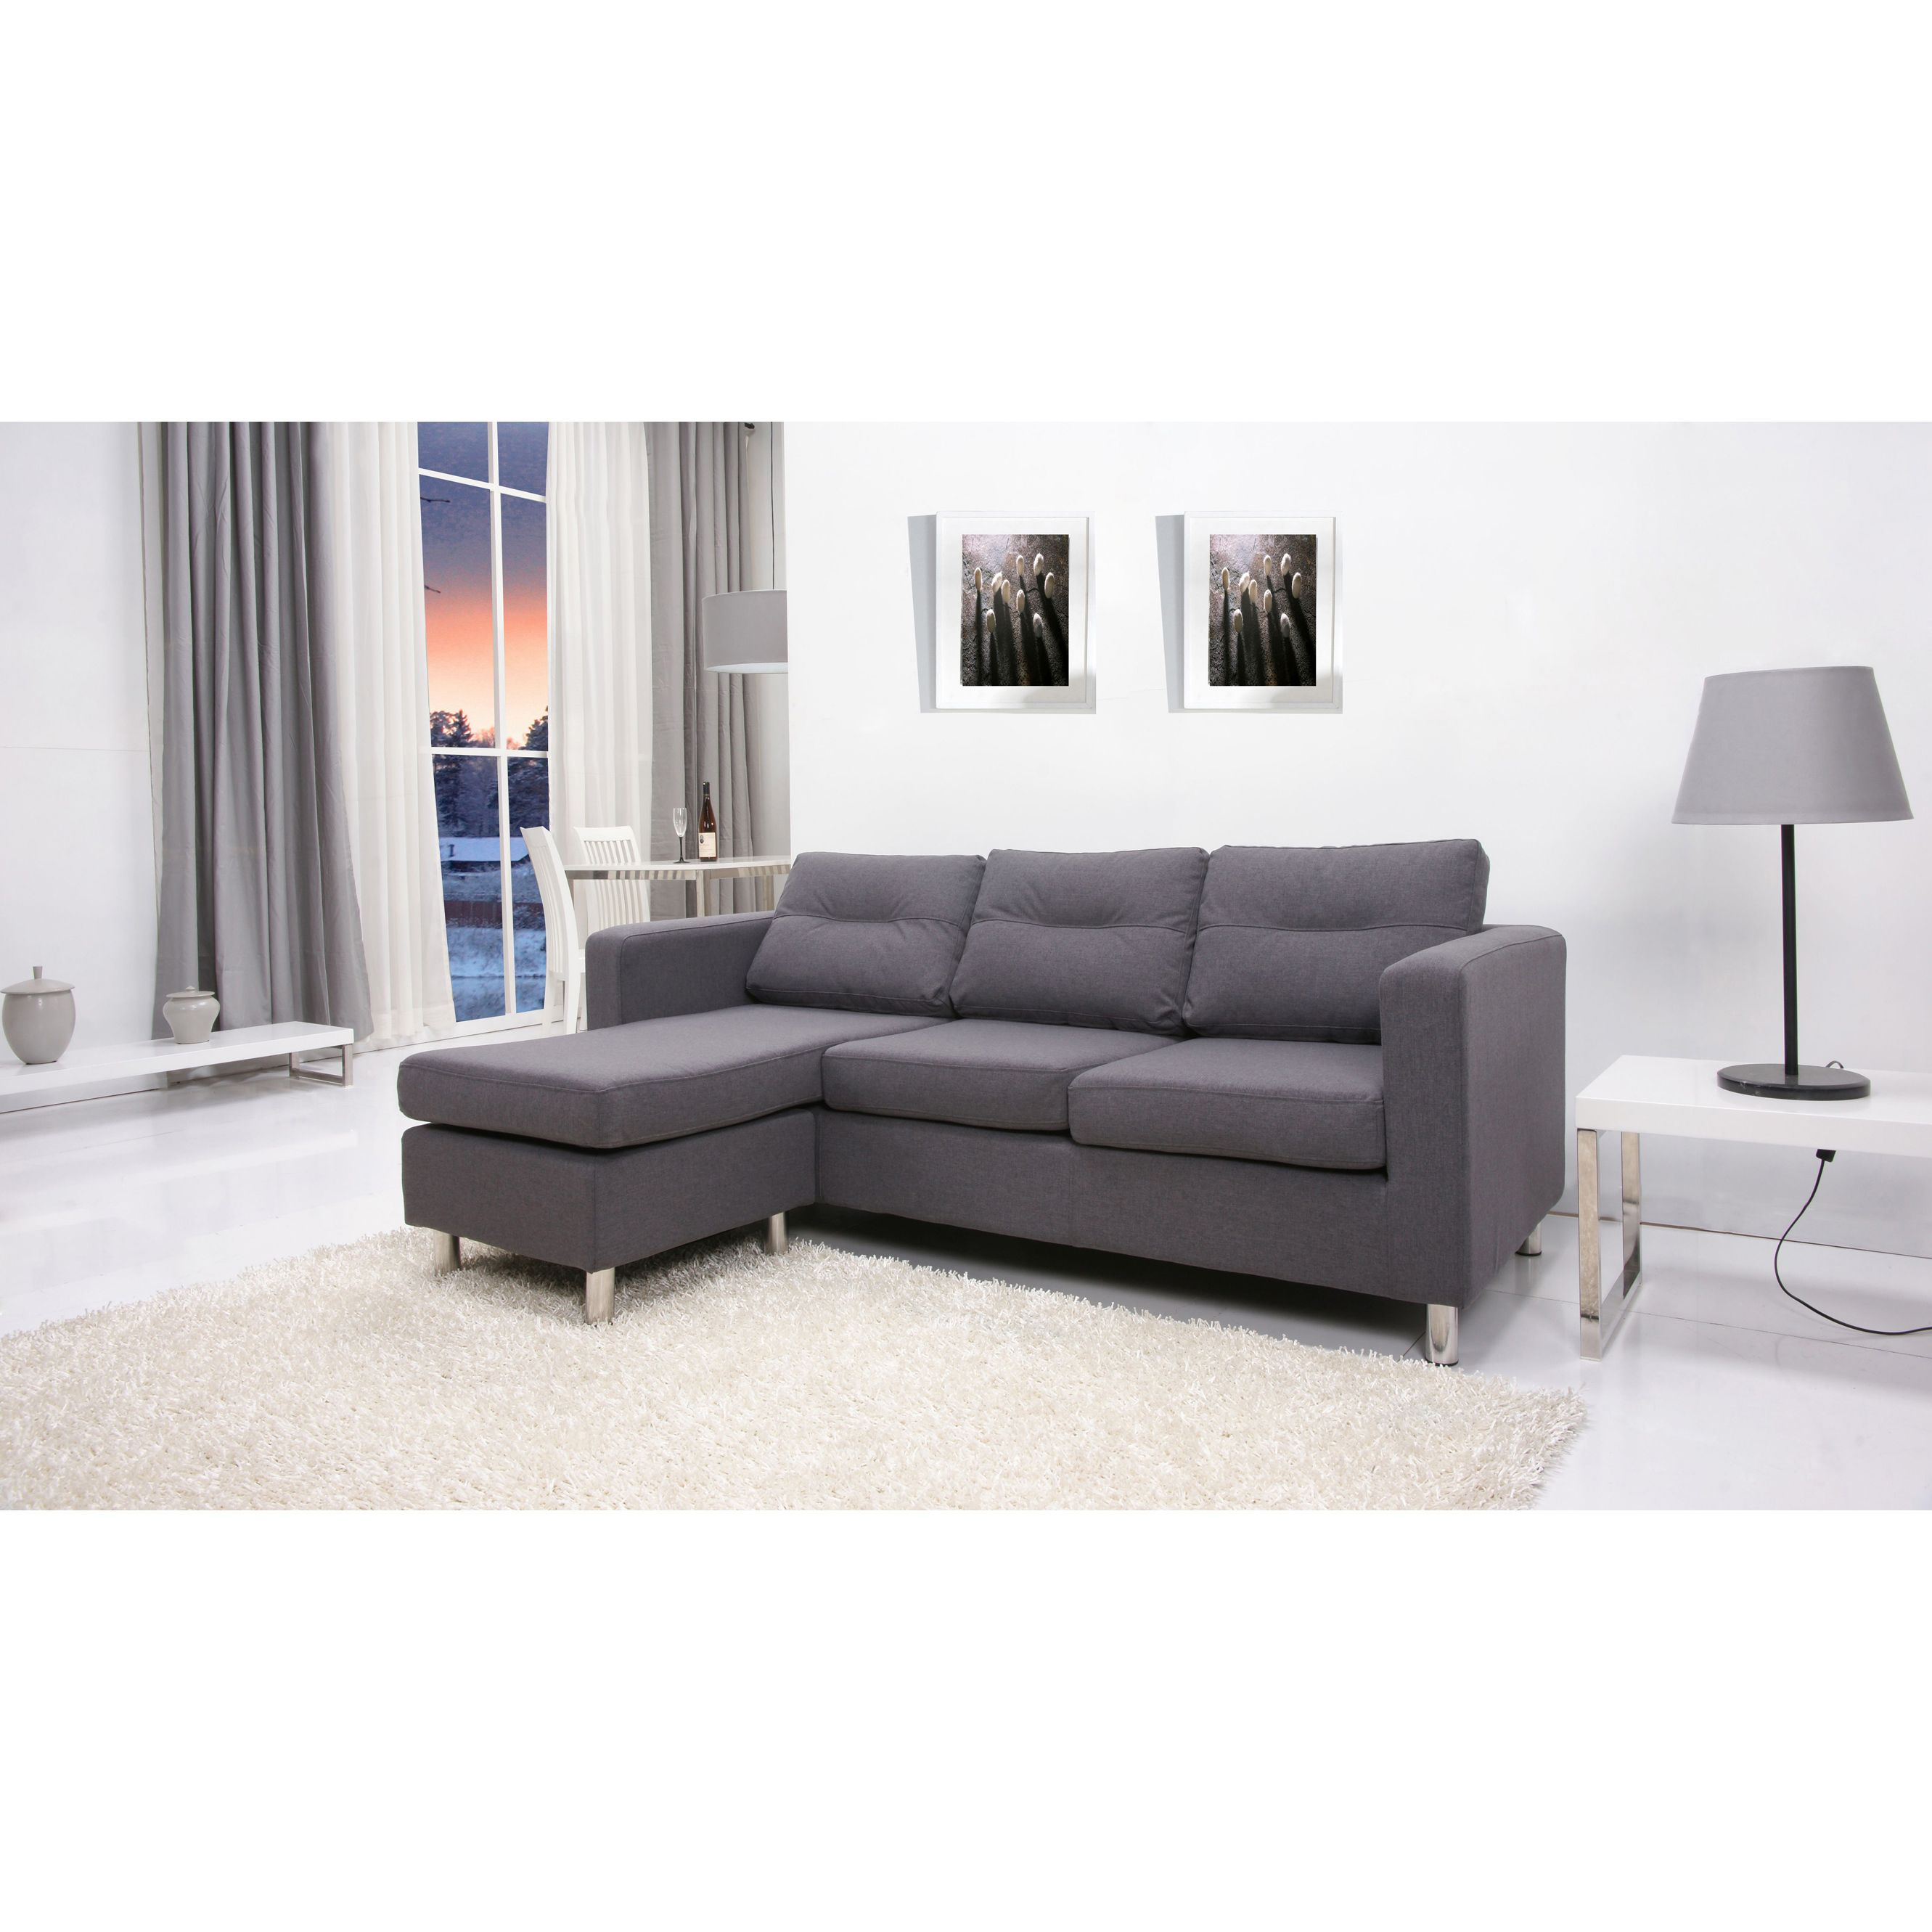 Detroit sectional sofa and ottoman set features a sleek contemporary